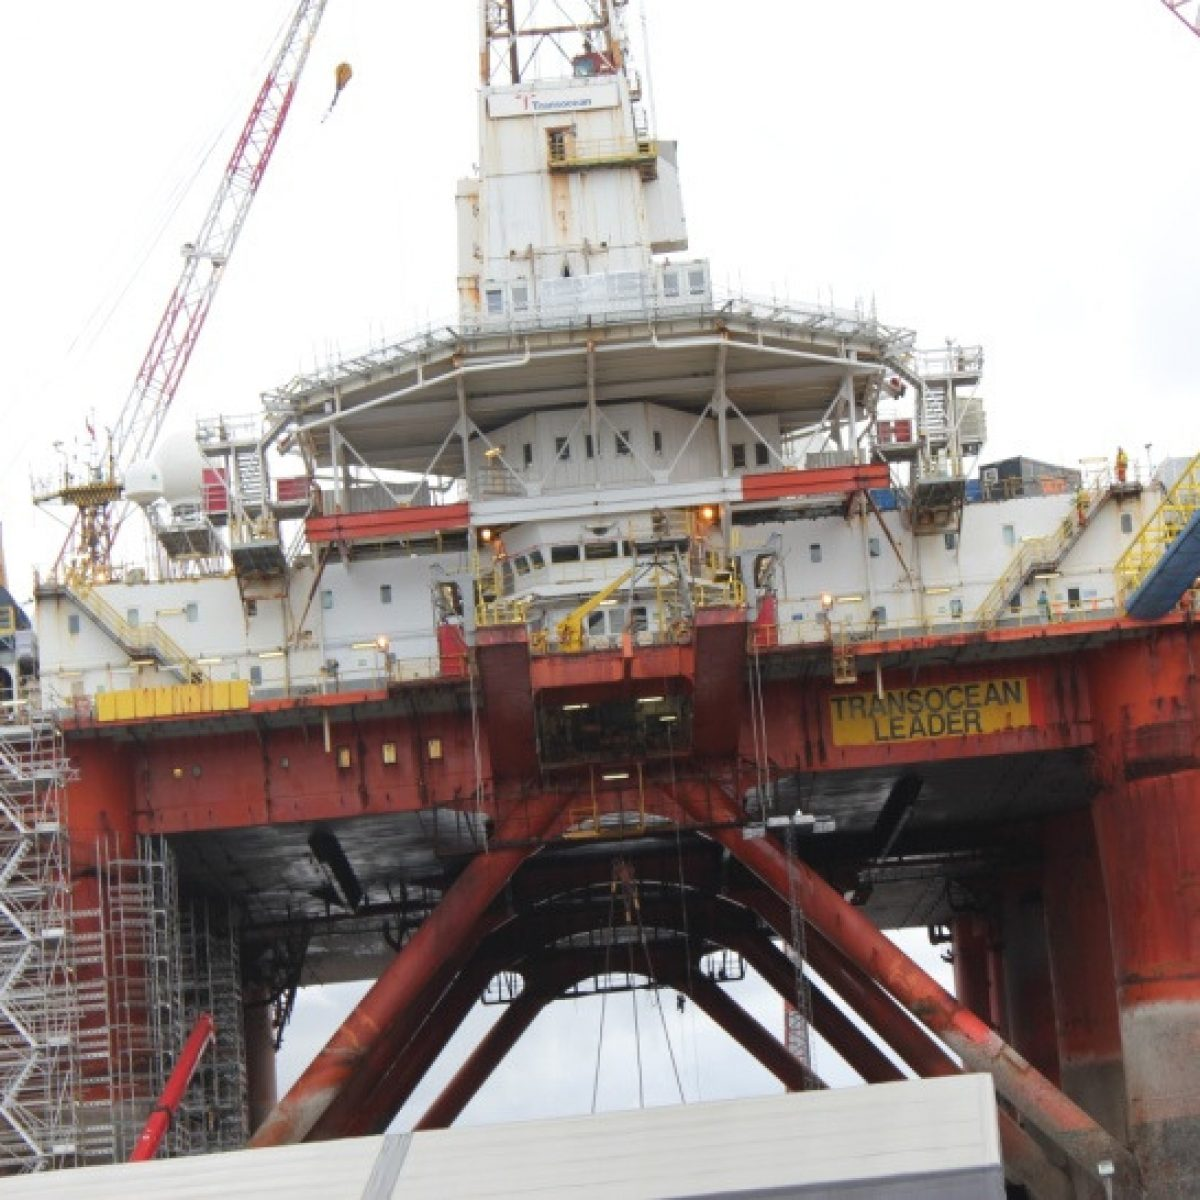 Safety Tools Case Study Transocean Leader 1